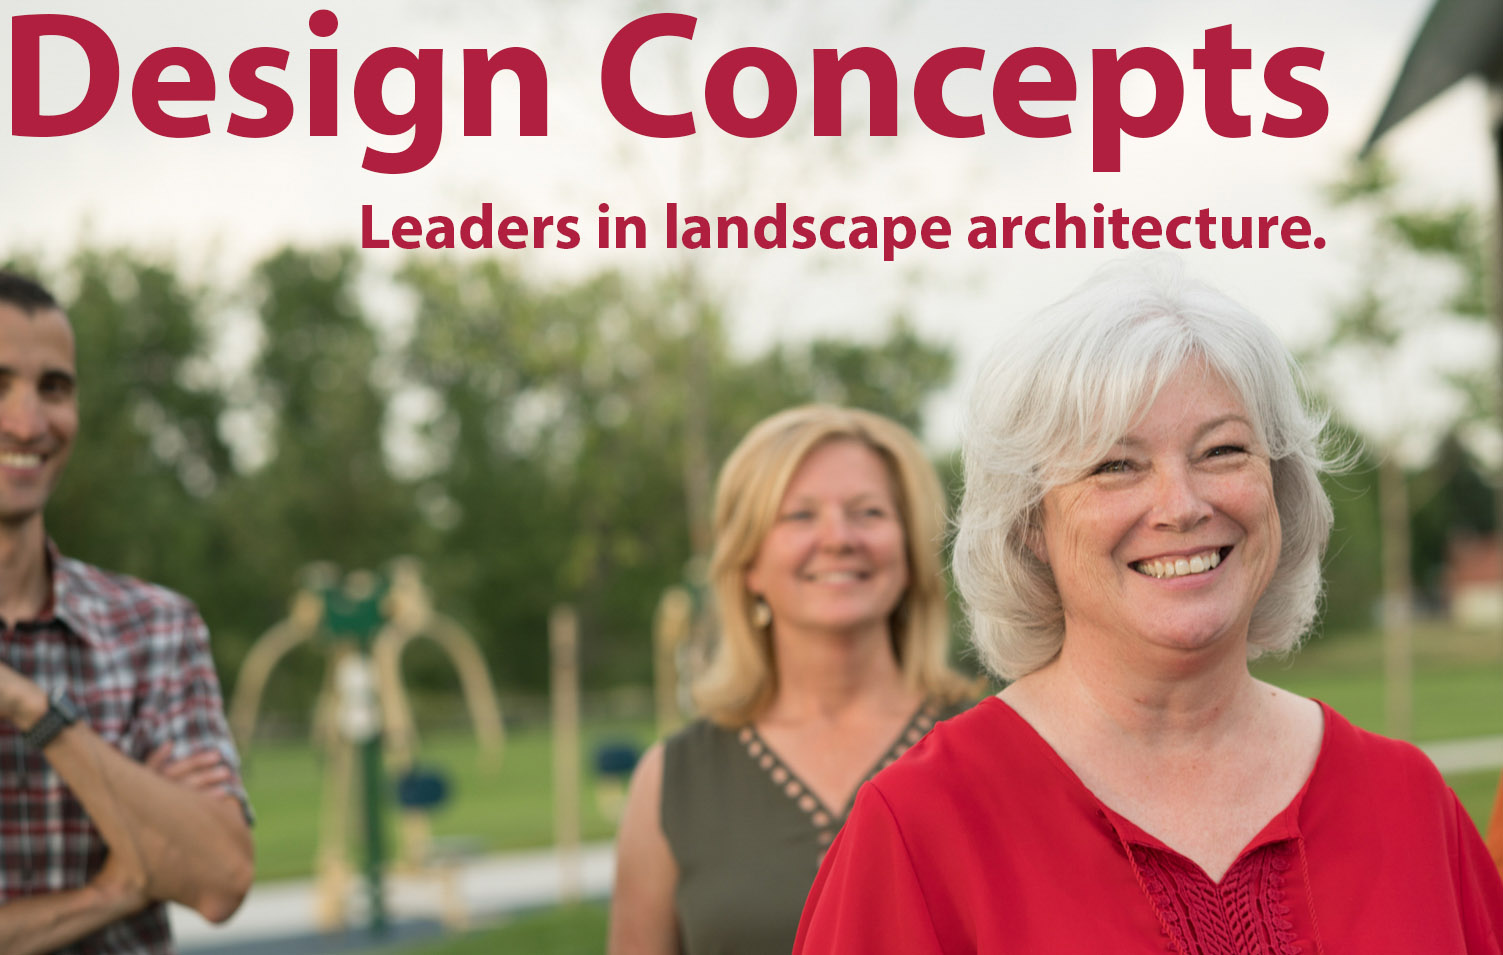 Carol's leadership is strengthened by her collaboration with Principals  Shanen Weber  and  Erik Spring . Carol, Erik, and Shanen are thankful for the many contributions of Axel and Robby and are happy to be leading Design Concepts to an exciting future.